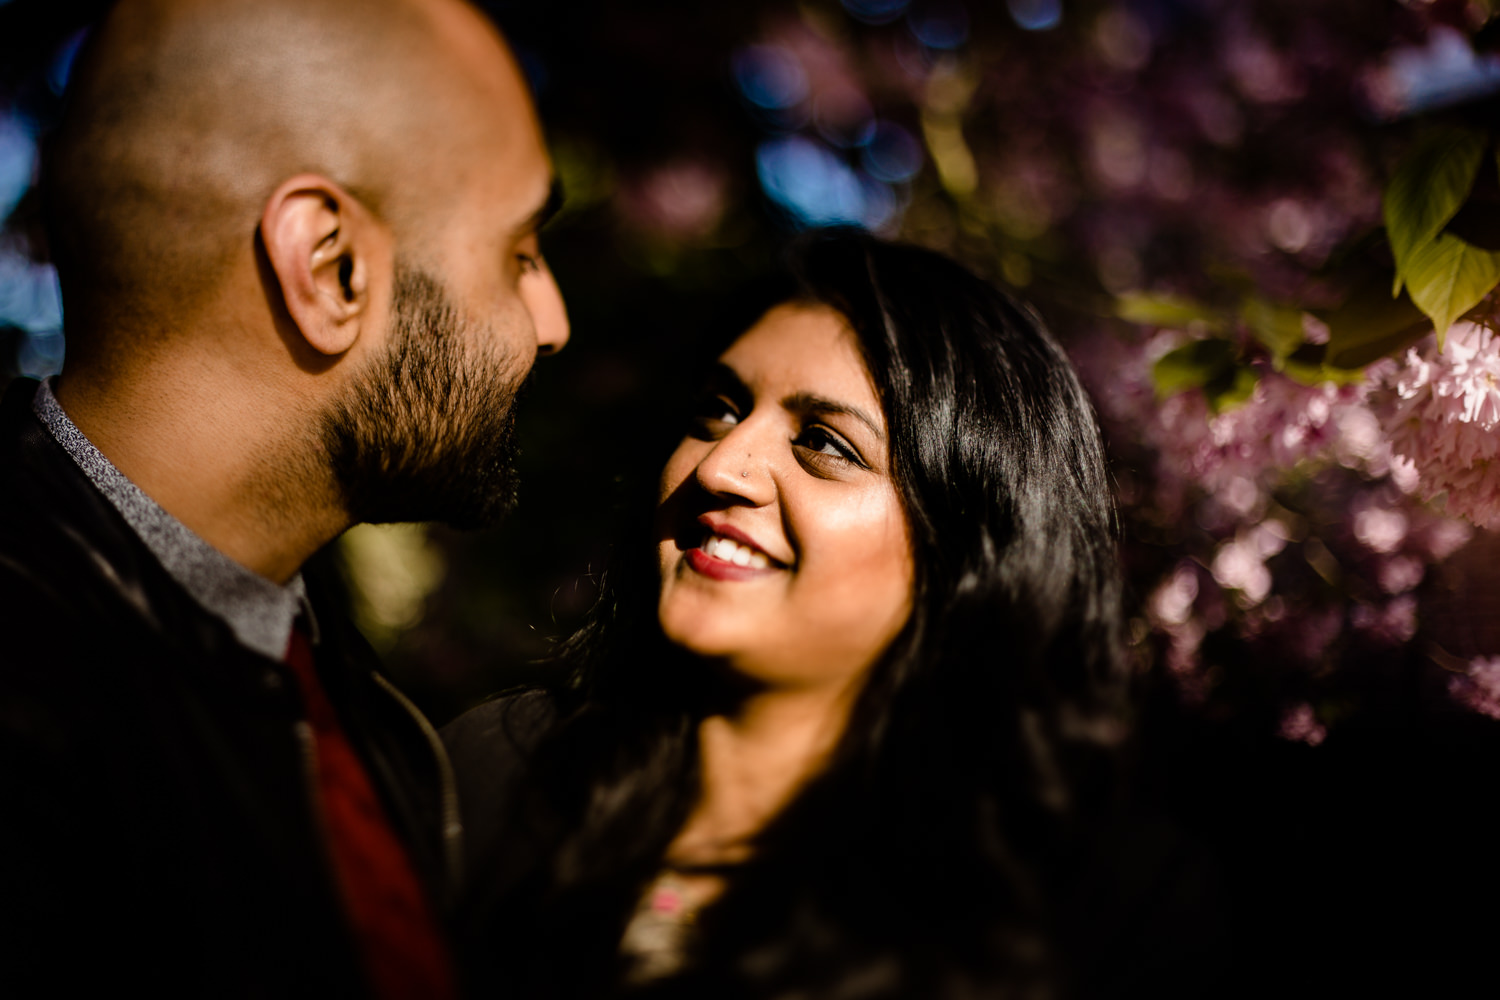 Freelensing image of a Hindu woman looking into her partners eyes on an engagement shoot.